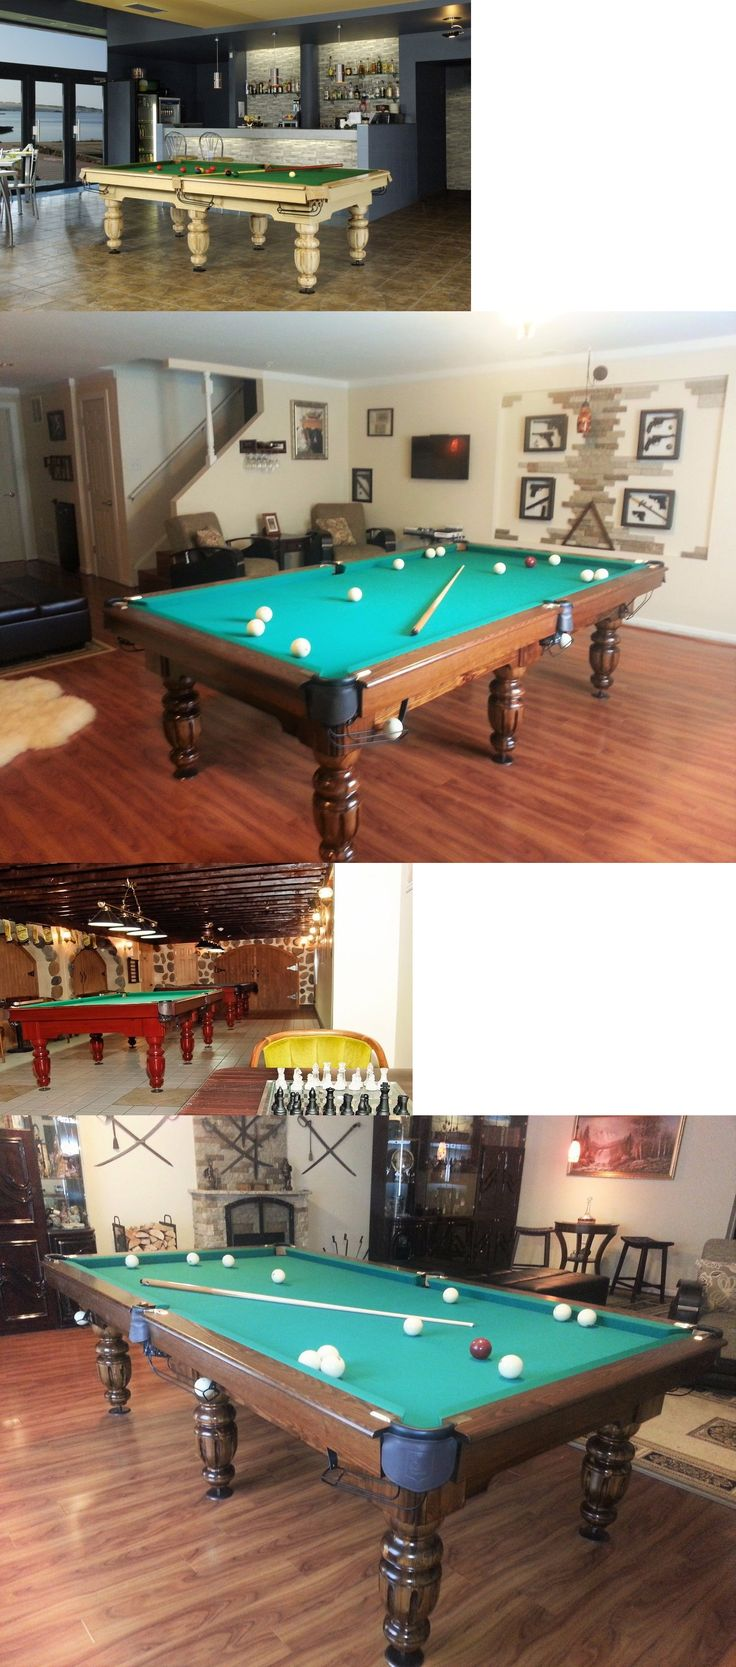 Tables 21213: 10 Professional Russian Pyramid Billiard Pool Table Sizes 8   12 Available